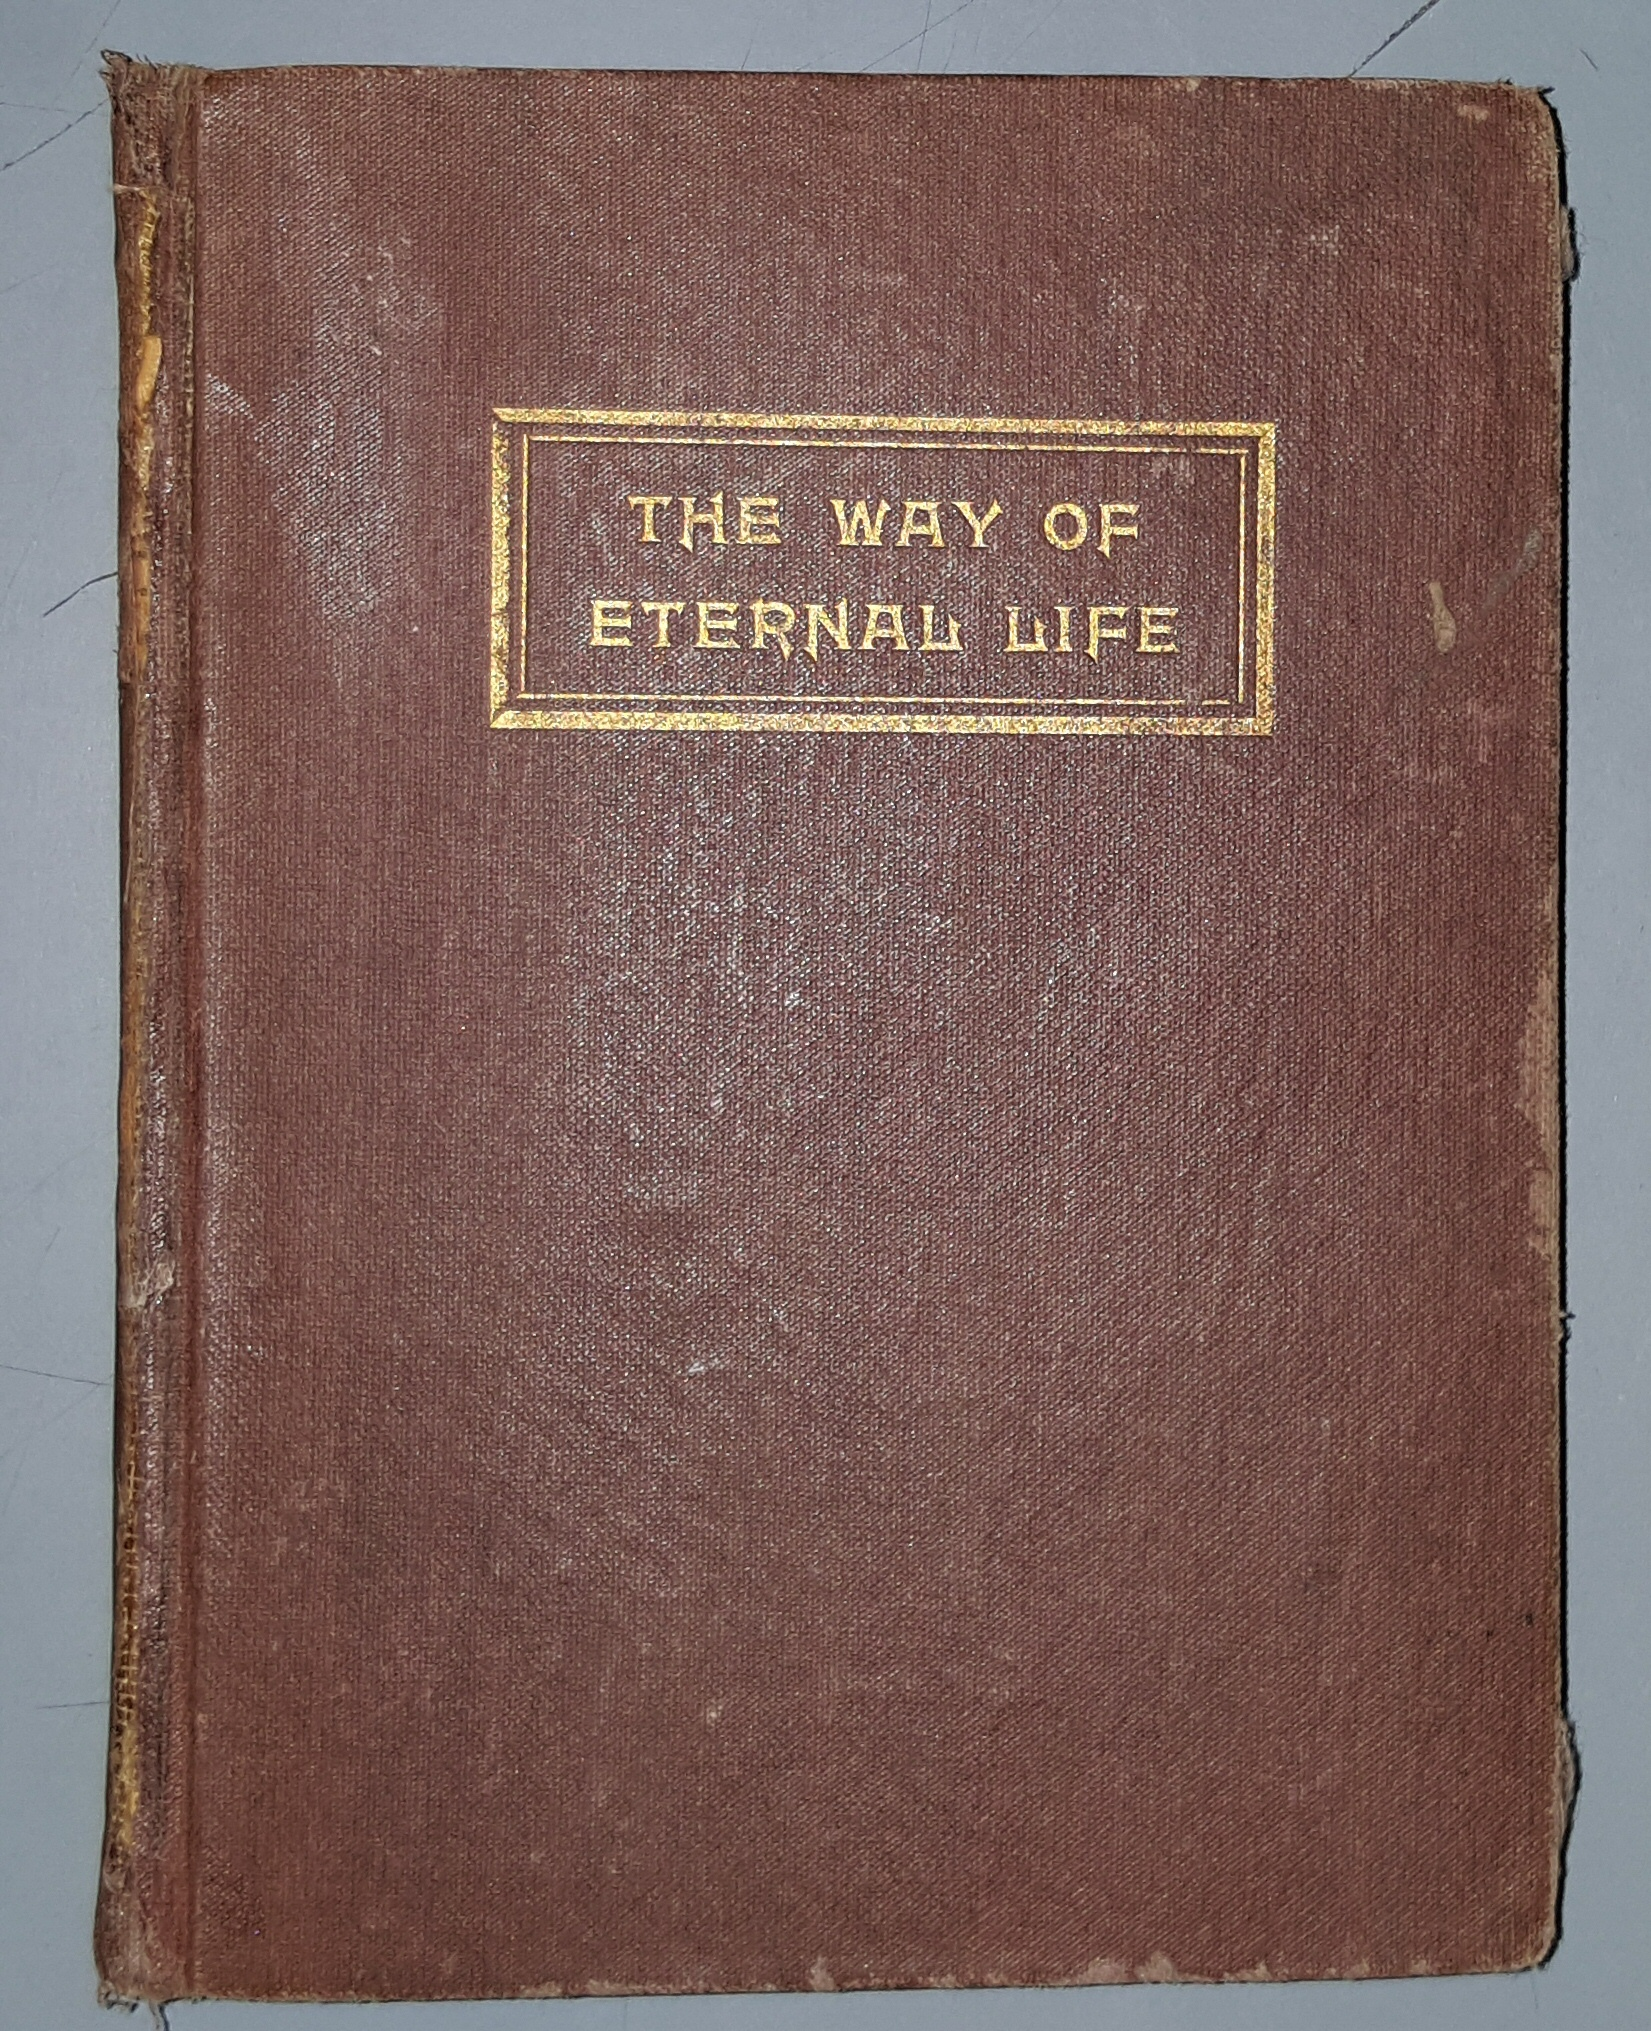 The Way of Eternal Life. Doctrines and Ordinances of the Church of Jesus Christ of Latter-Day Saints, Parry, Edwin F.